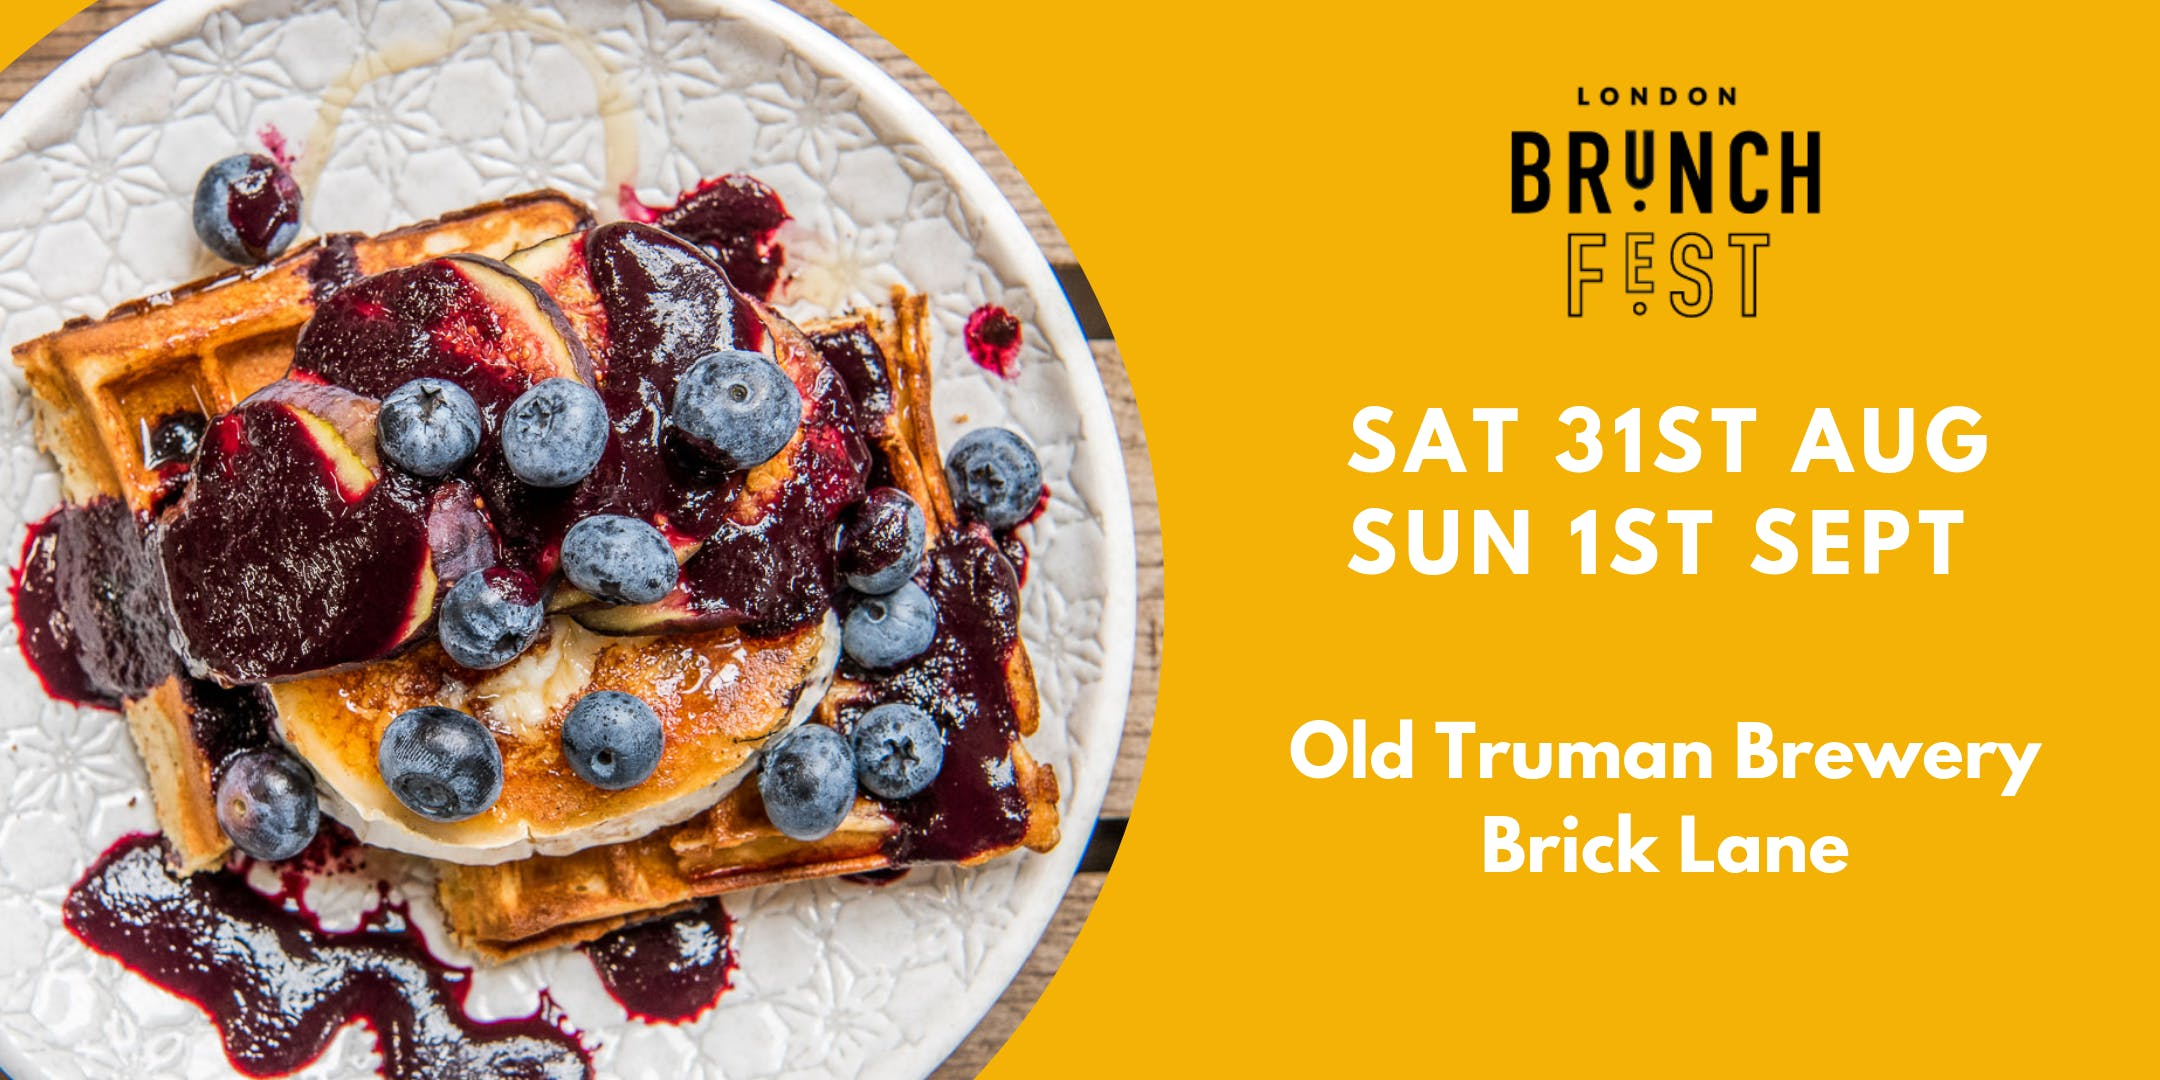 London Brunch Fest 2019